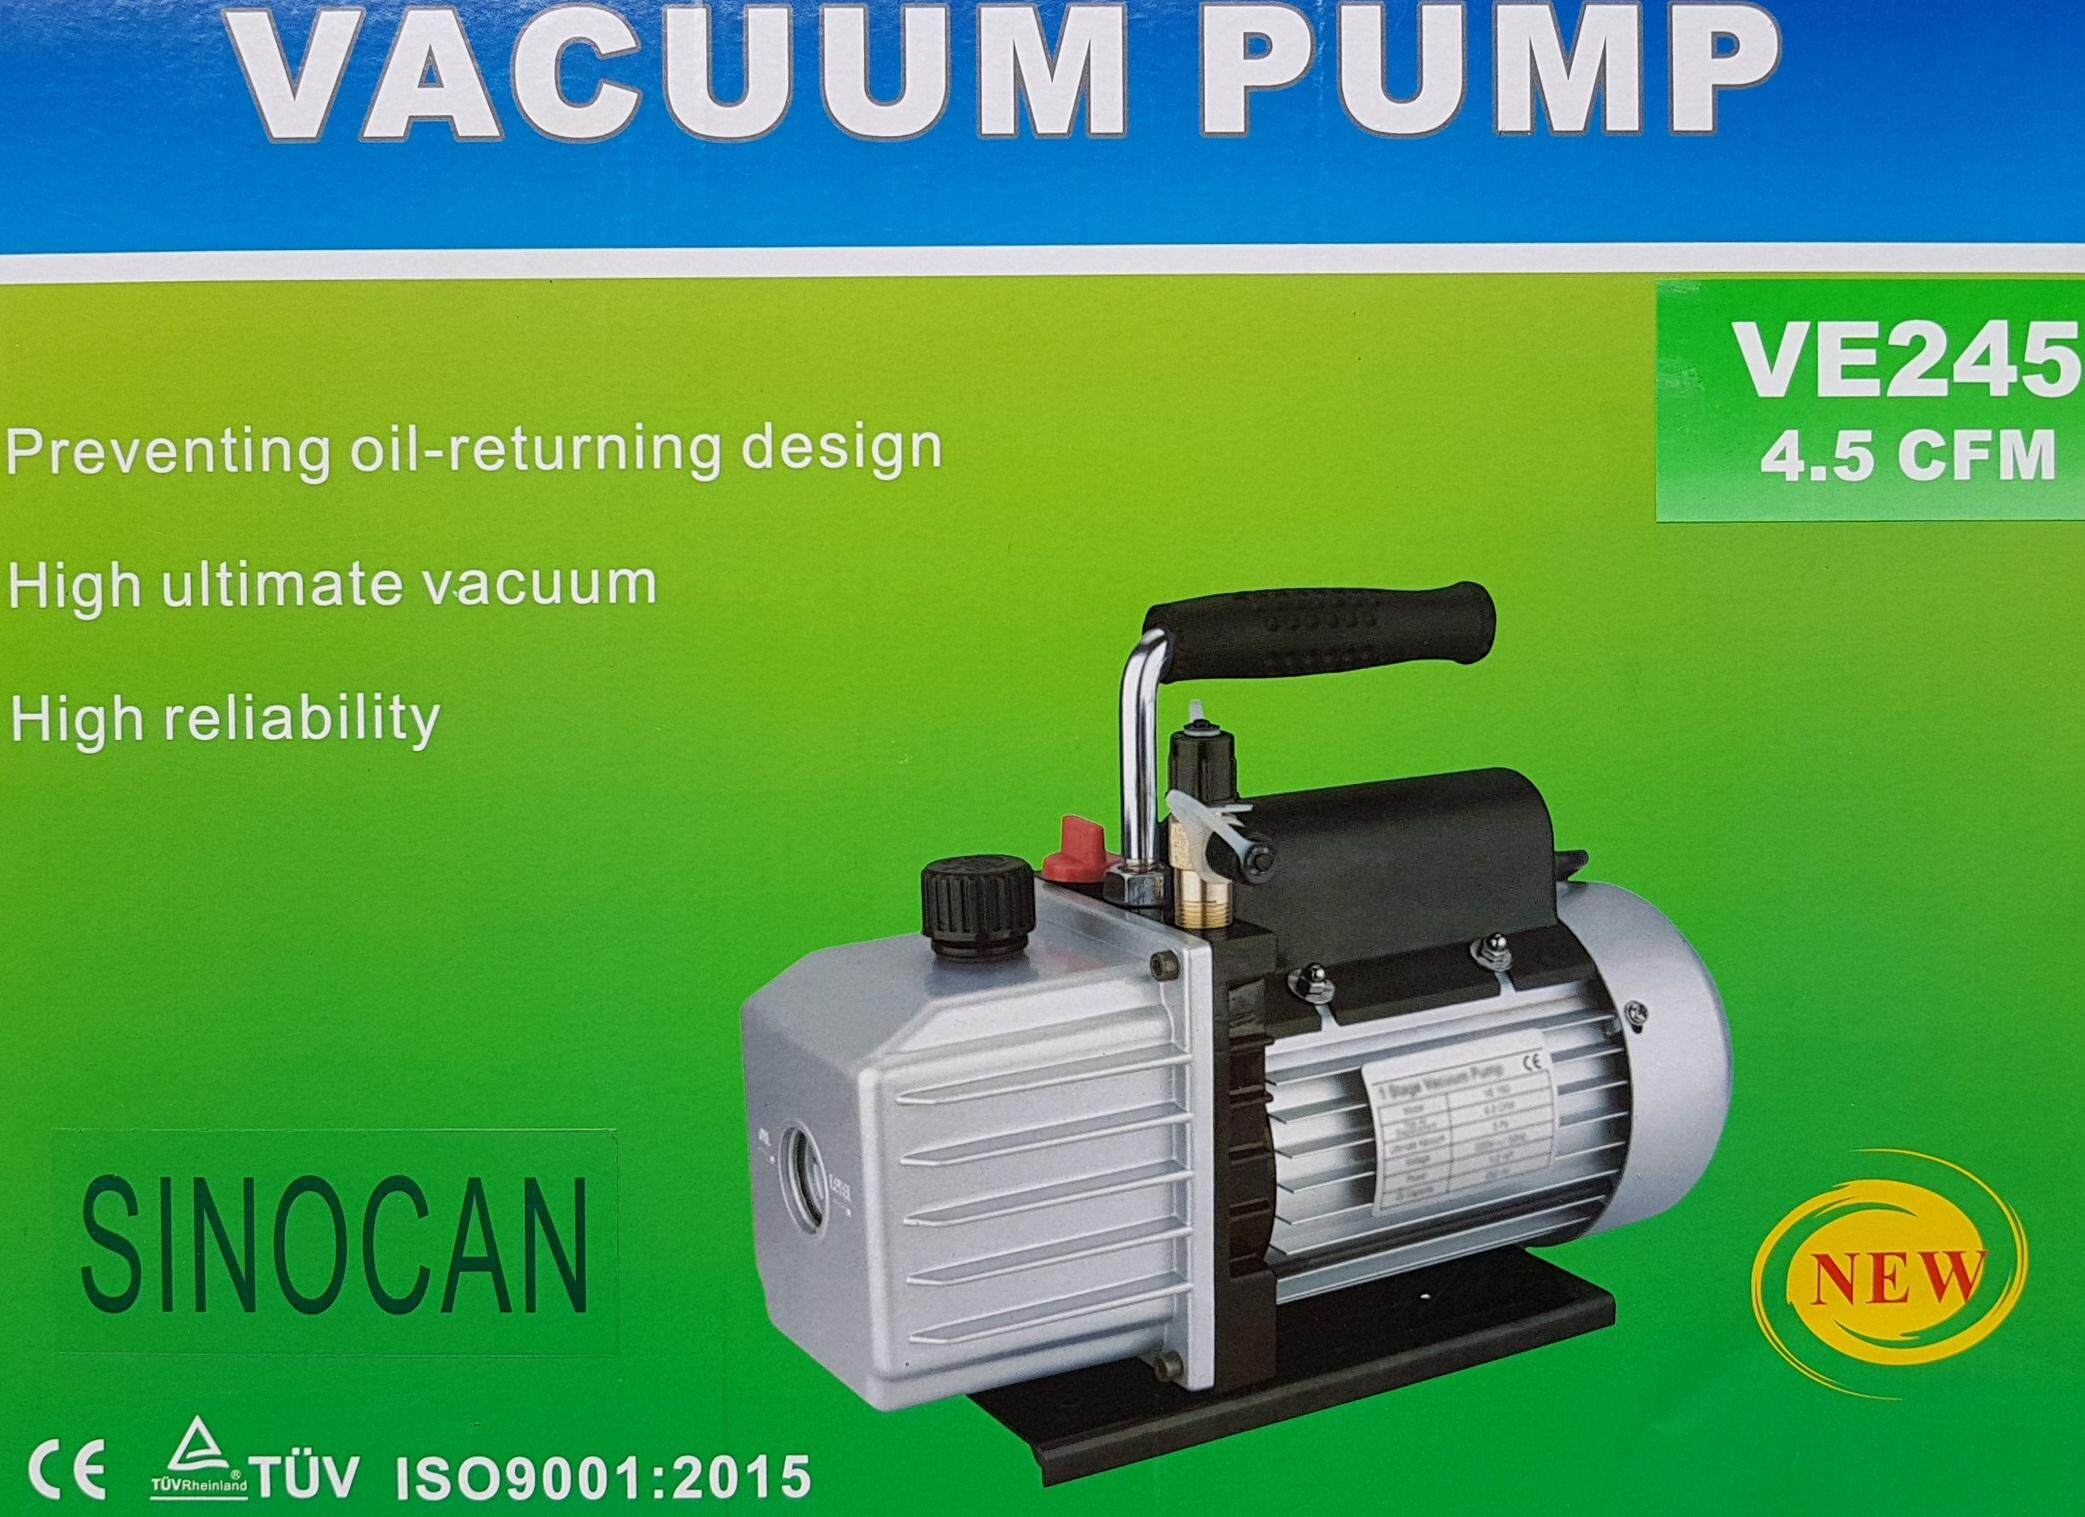 1 year warranty 3.5 hp vacuum motor pump stage 2 tank air compressor suction supply wind control oil filter diaphragm intake pressure high handle hold power keep in air spray gun nozzle